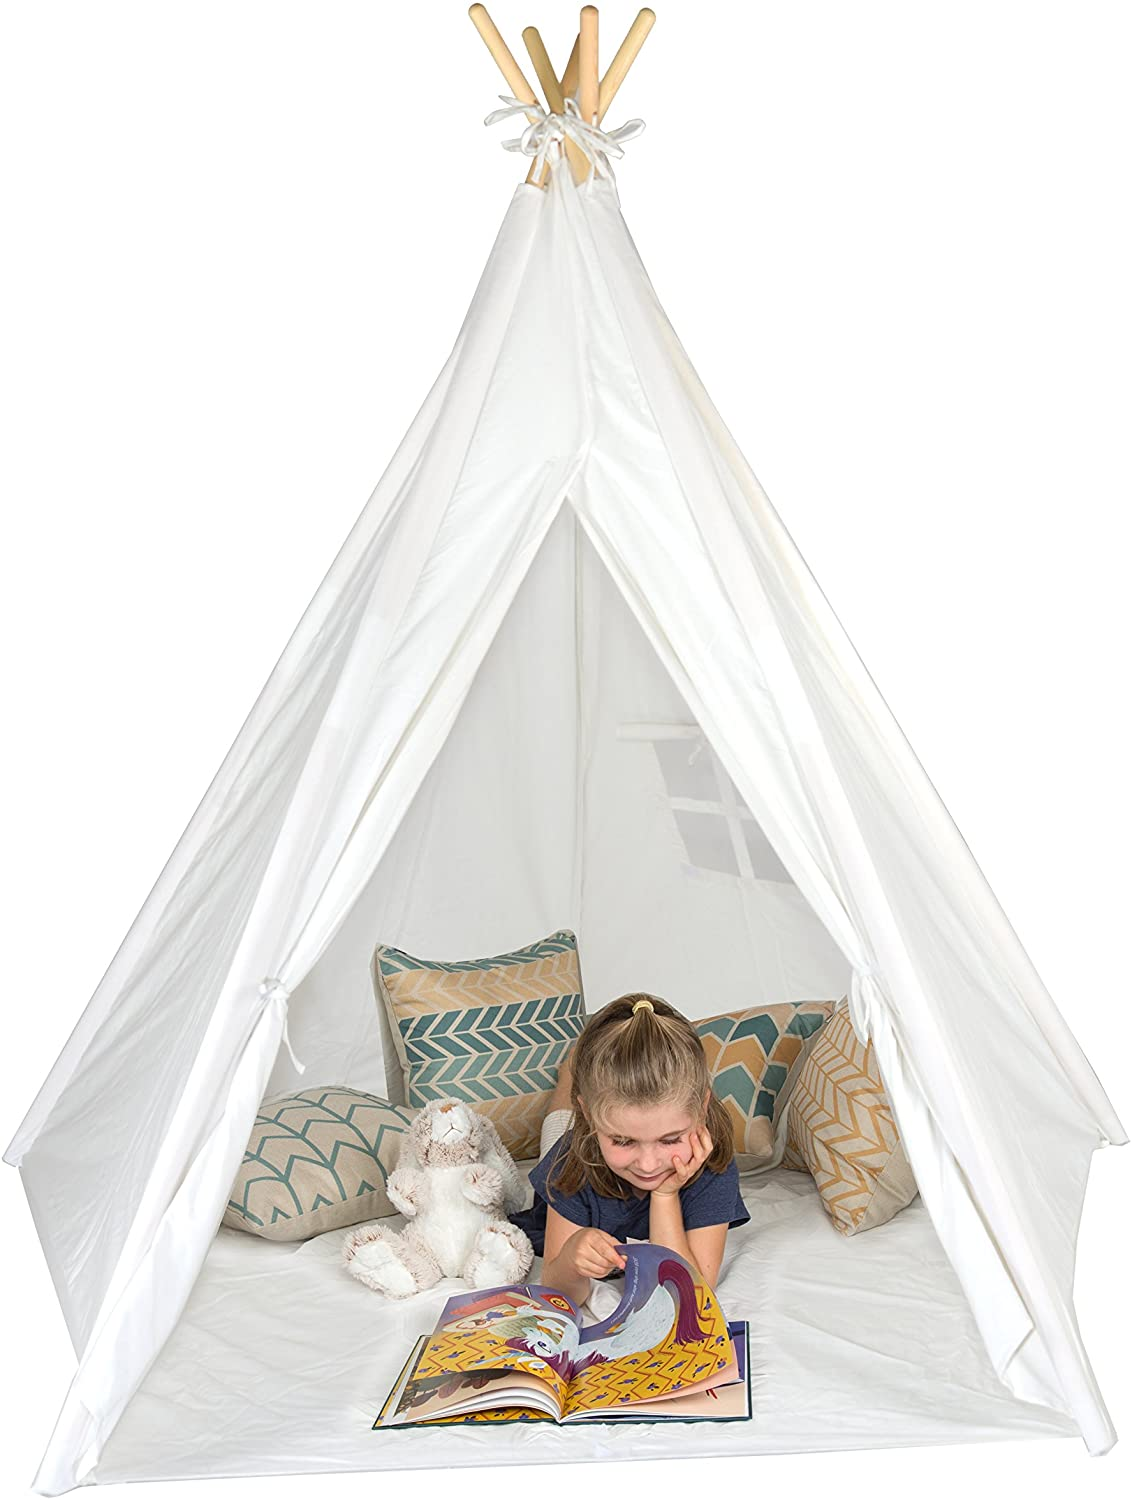 gifts-for-girls-tent